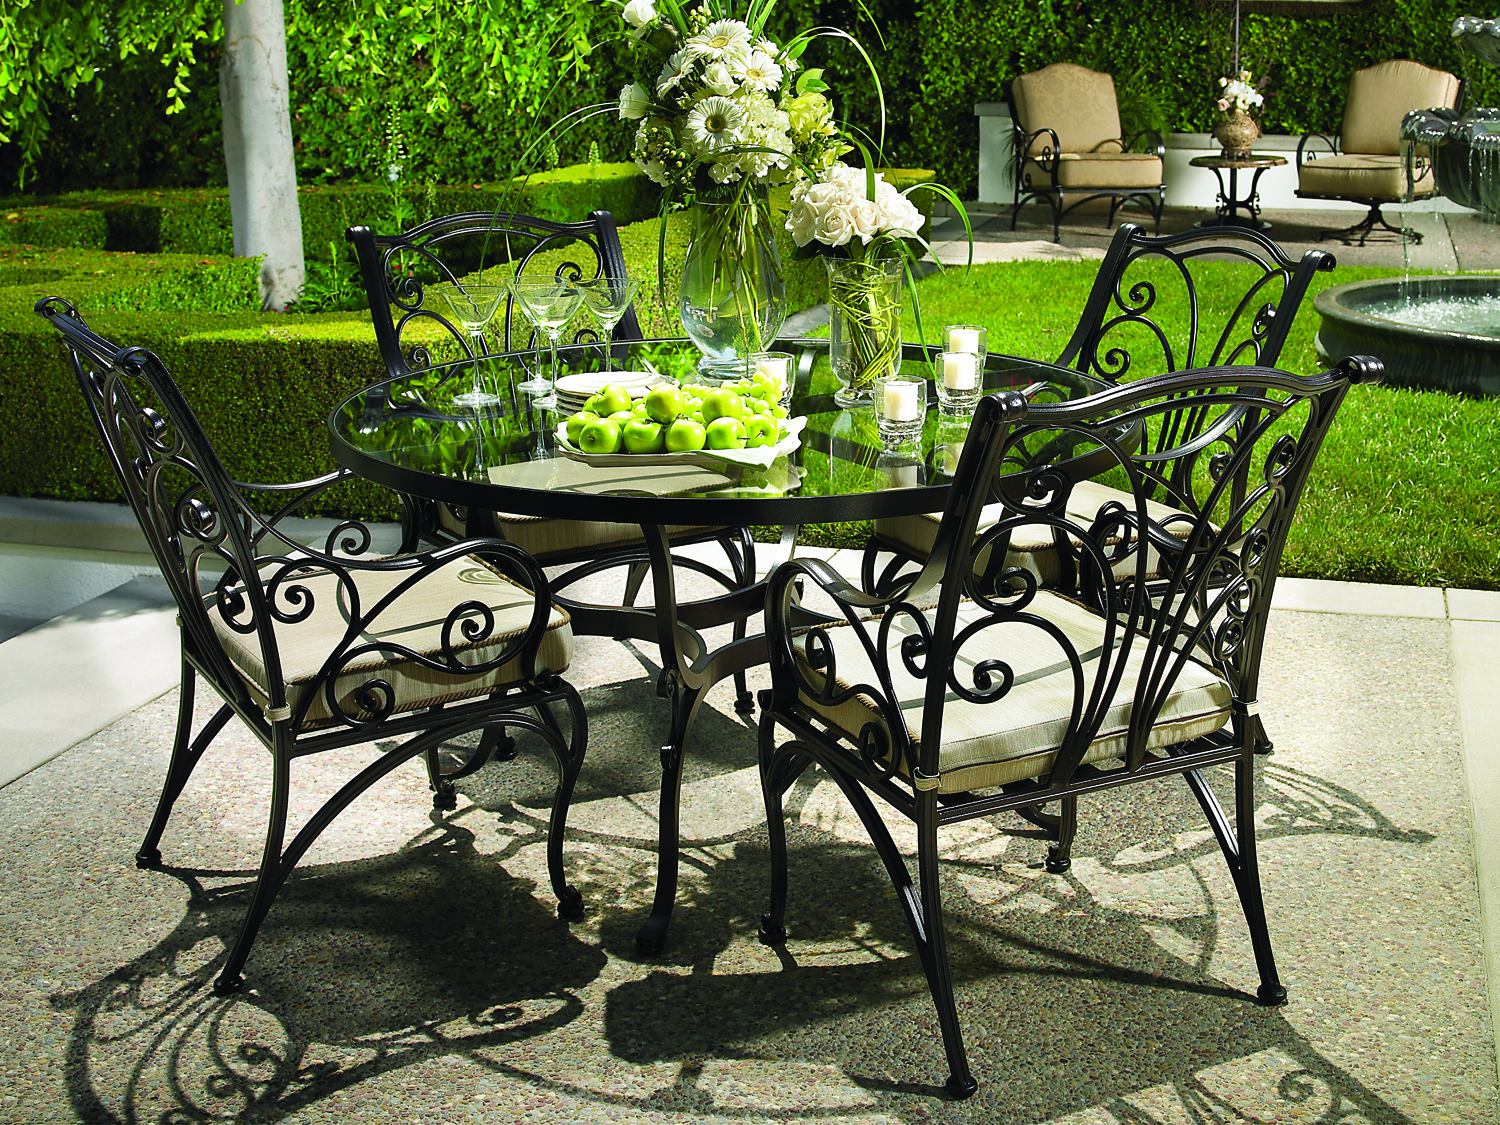 Garden Furniture Made Of Metal 37 Photos Country Metal Bench Aluminum Sets For Garden Iron Table And Chair Options